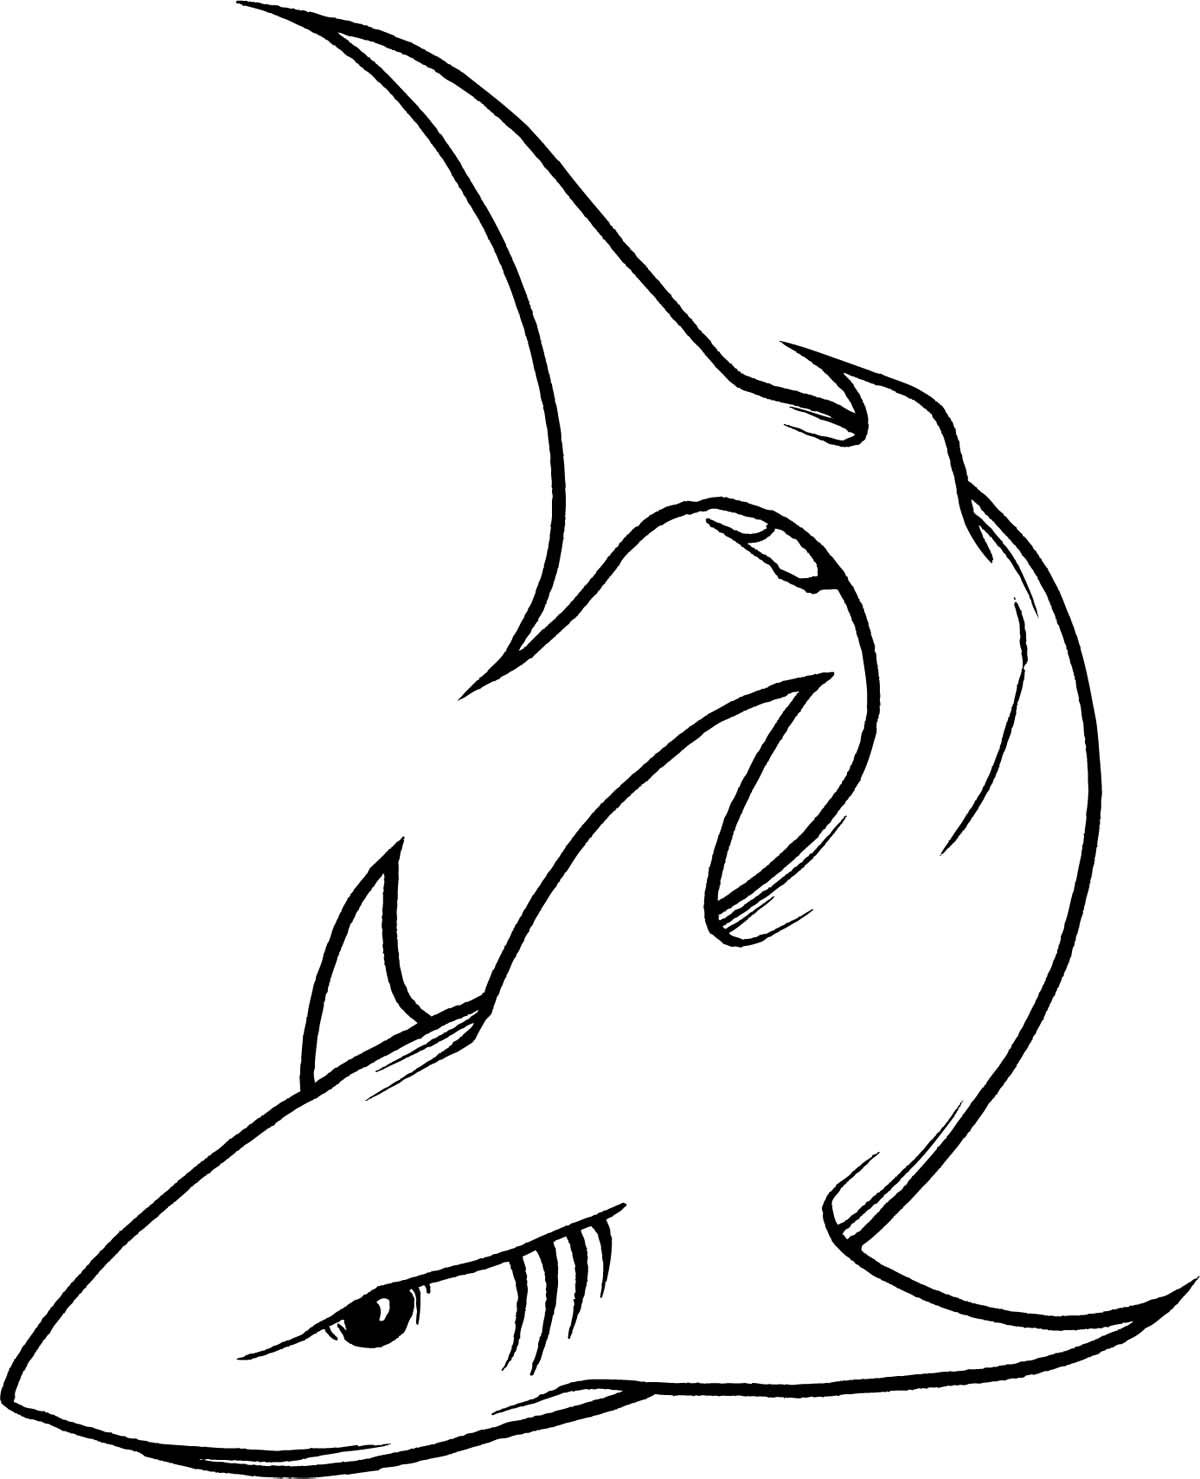 hight resolution of hammerhead shark outline clipart panda free clipart images